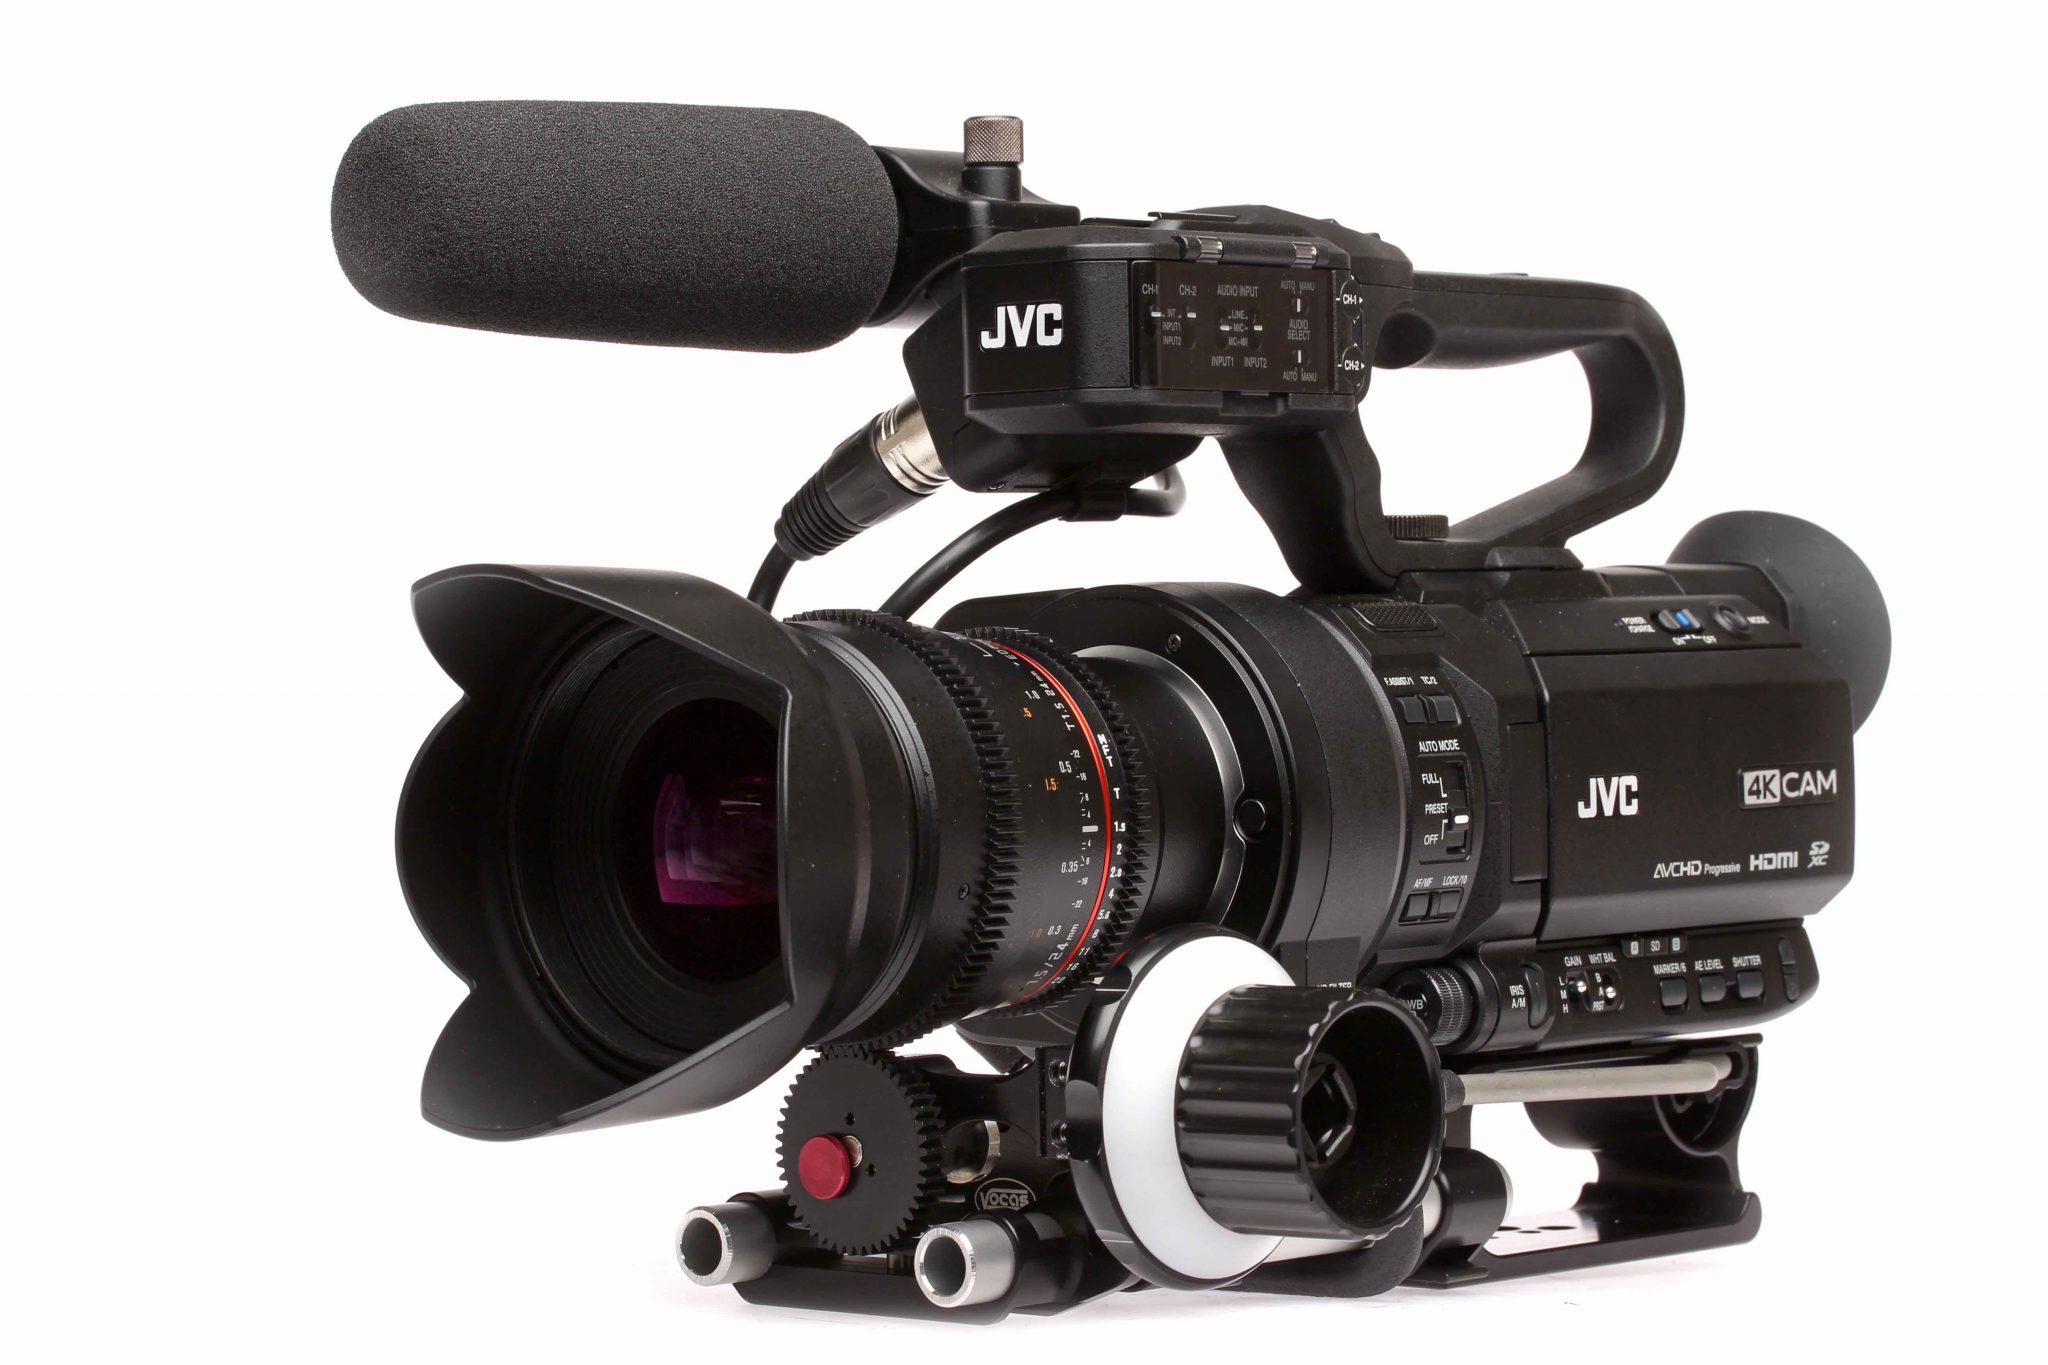 jvc gy hm170 4kcam review